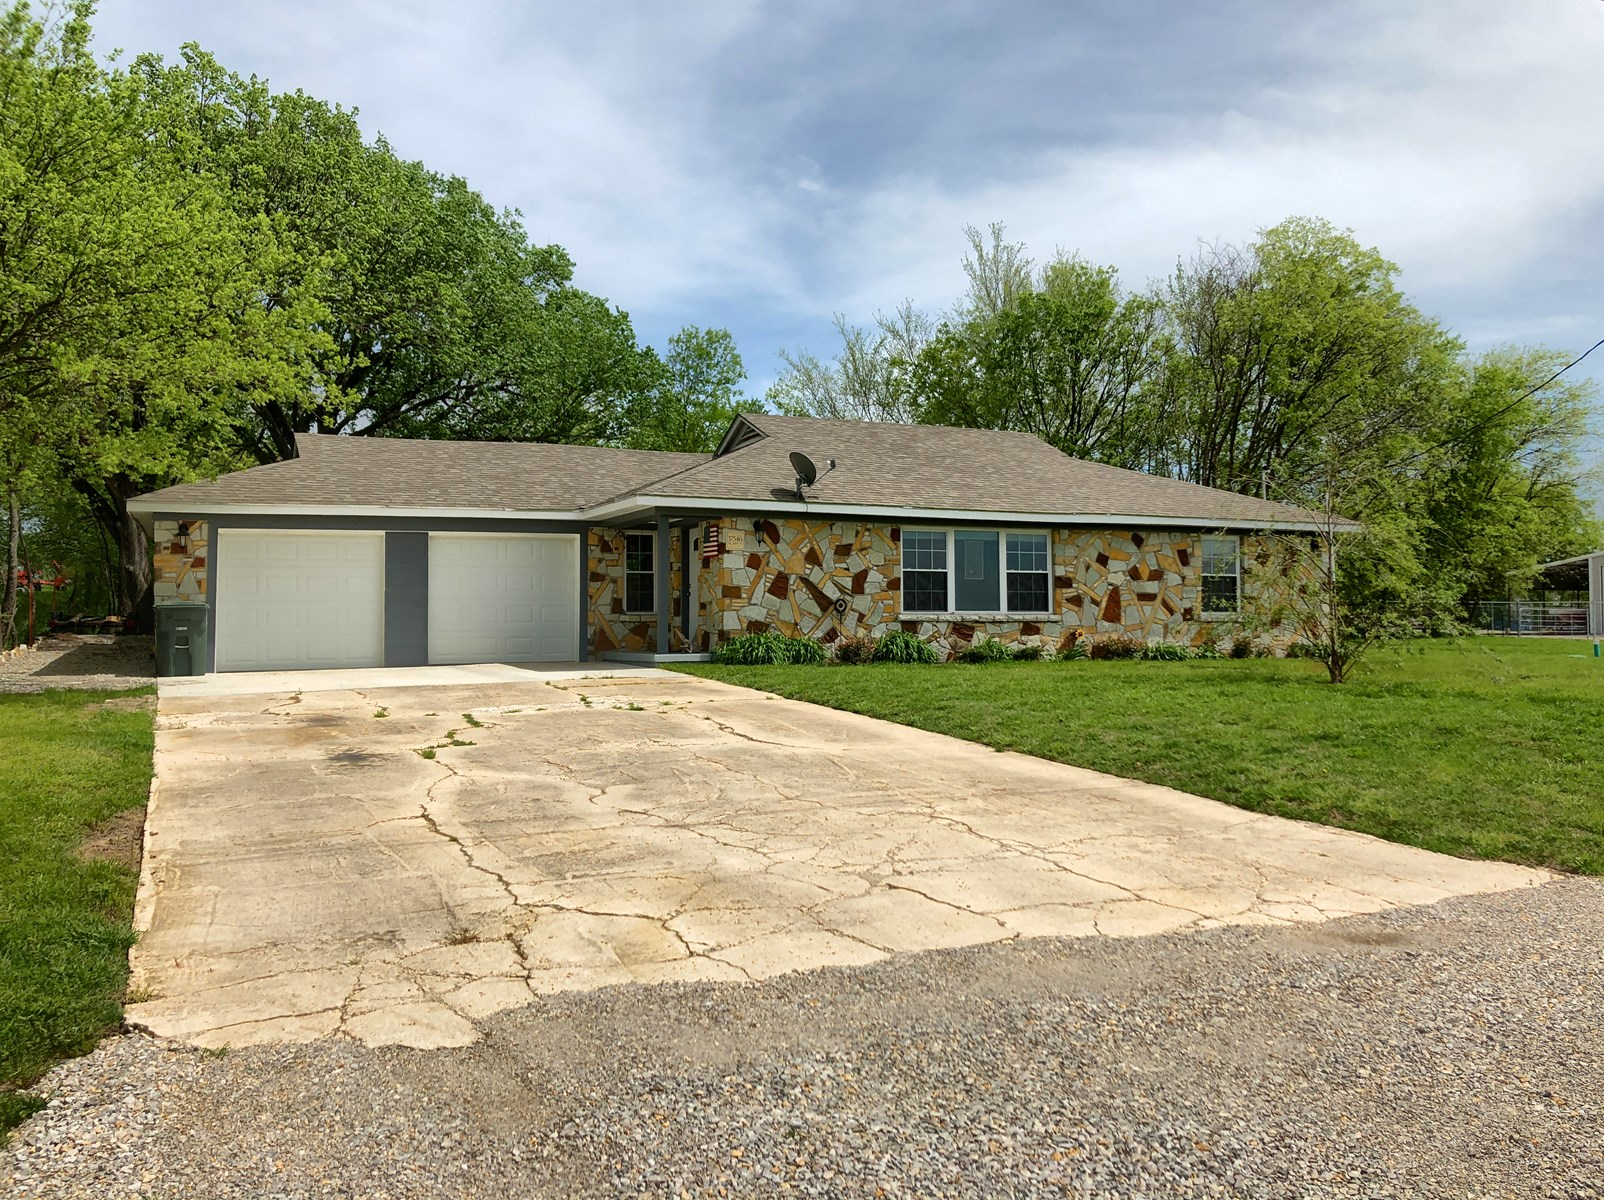 REMODELED ROCK HOME WITH ROOM FOR HORSES+ 2,000 SQ FT SHOP